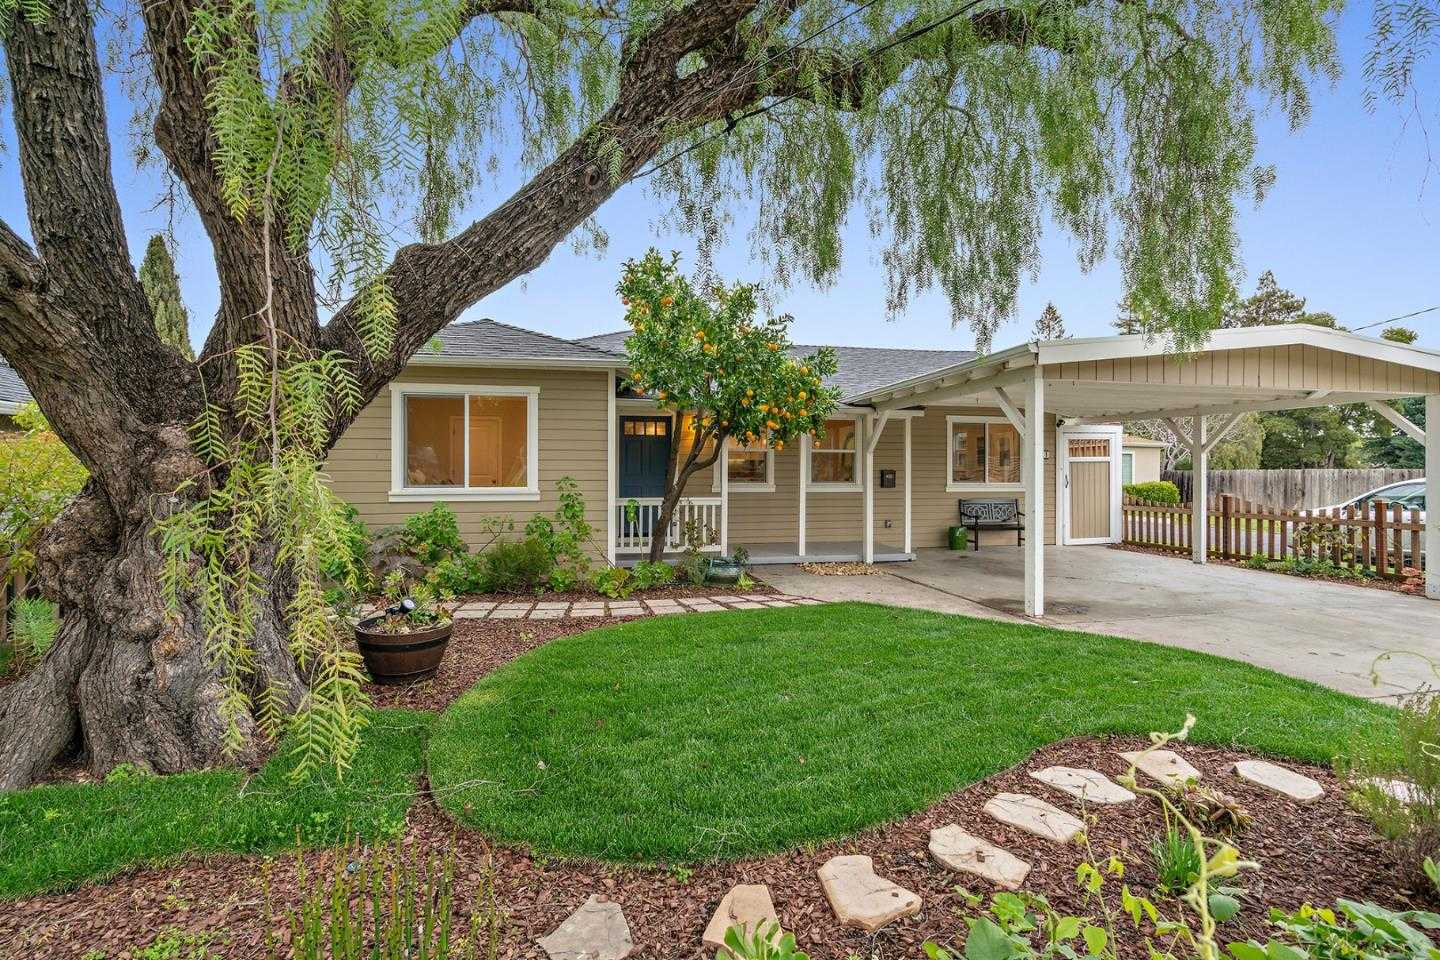 $1,598,000 - 4Br/2Ba -  for Sale in Redwood City